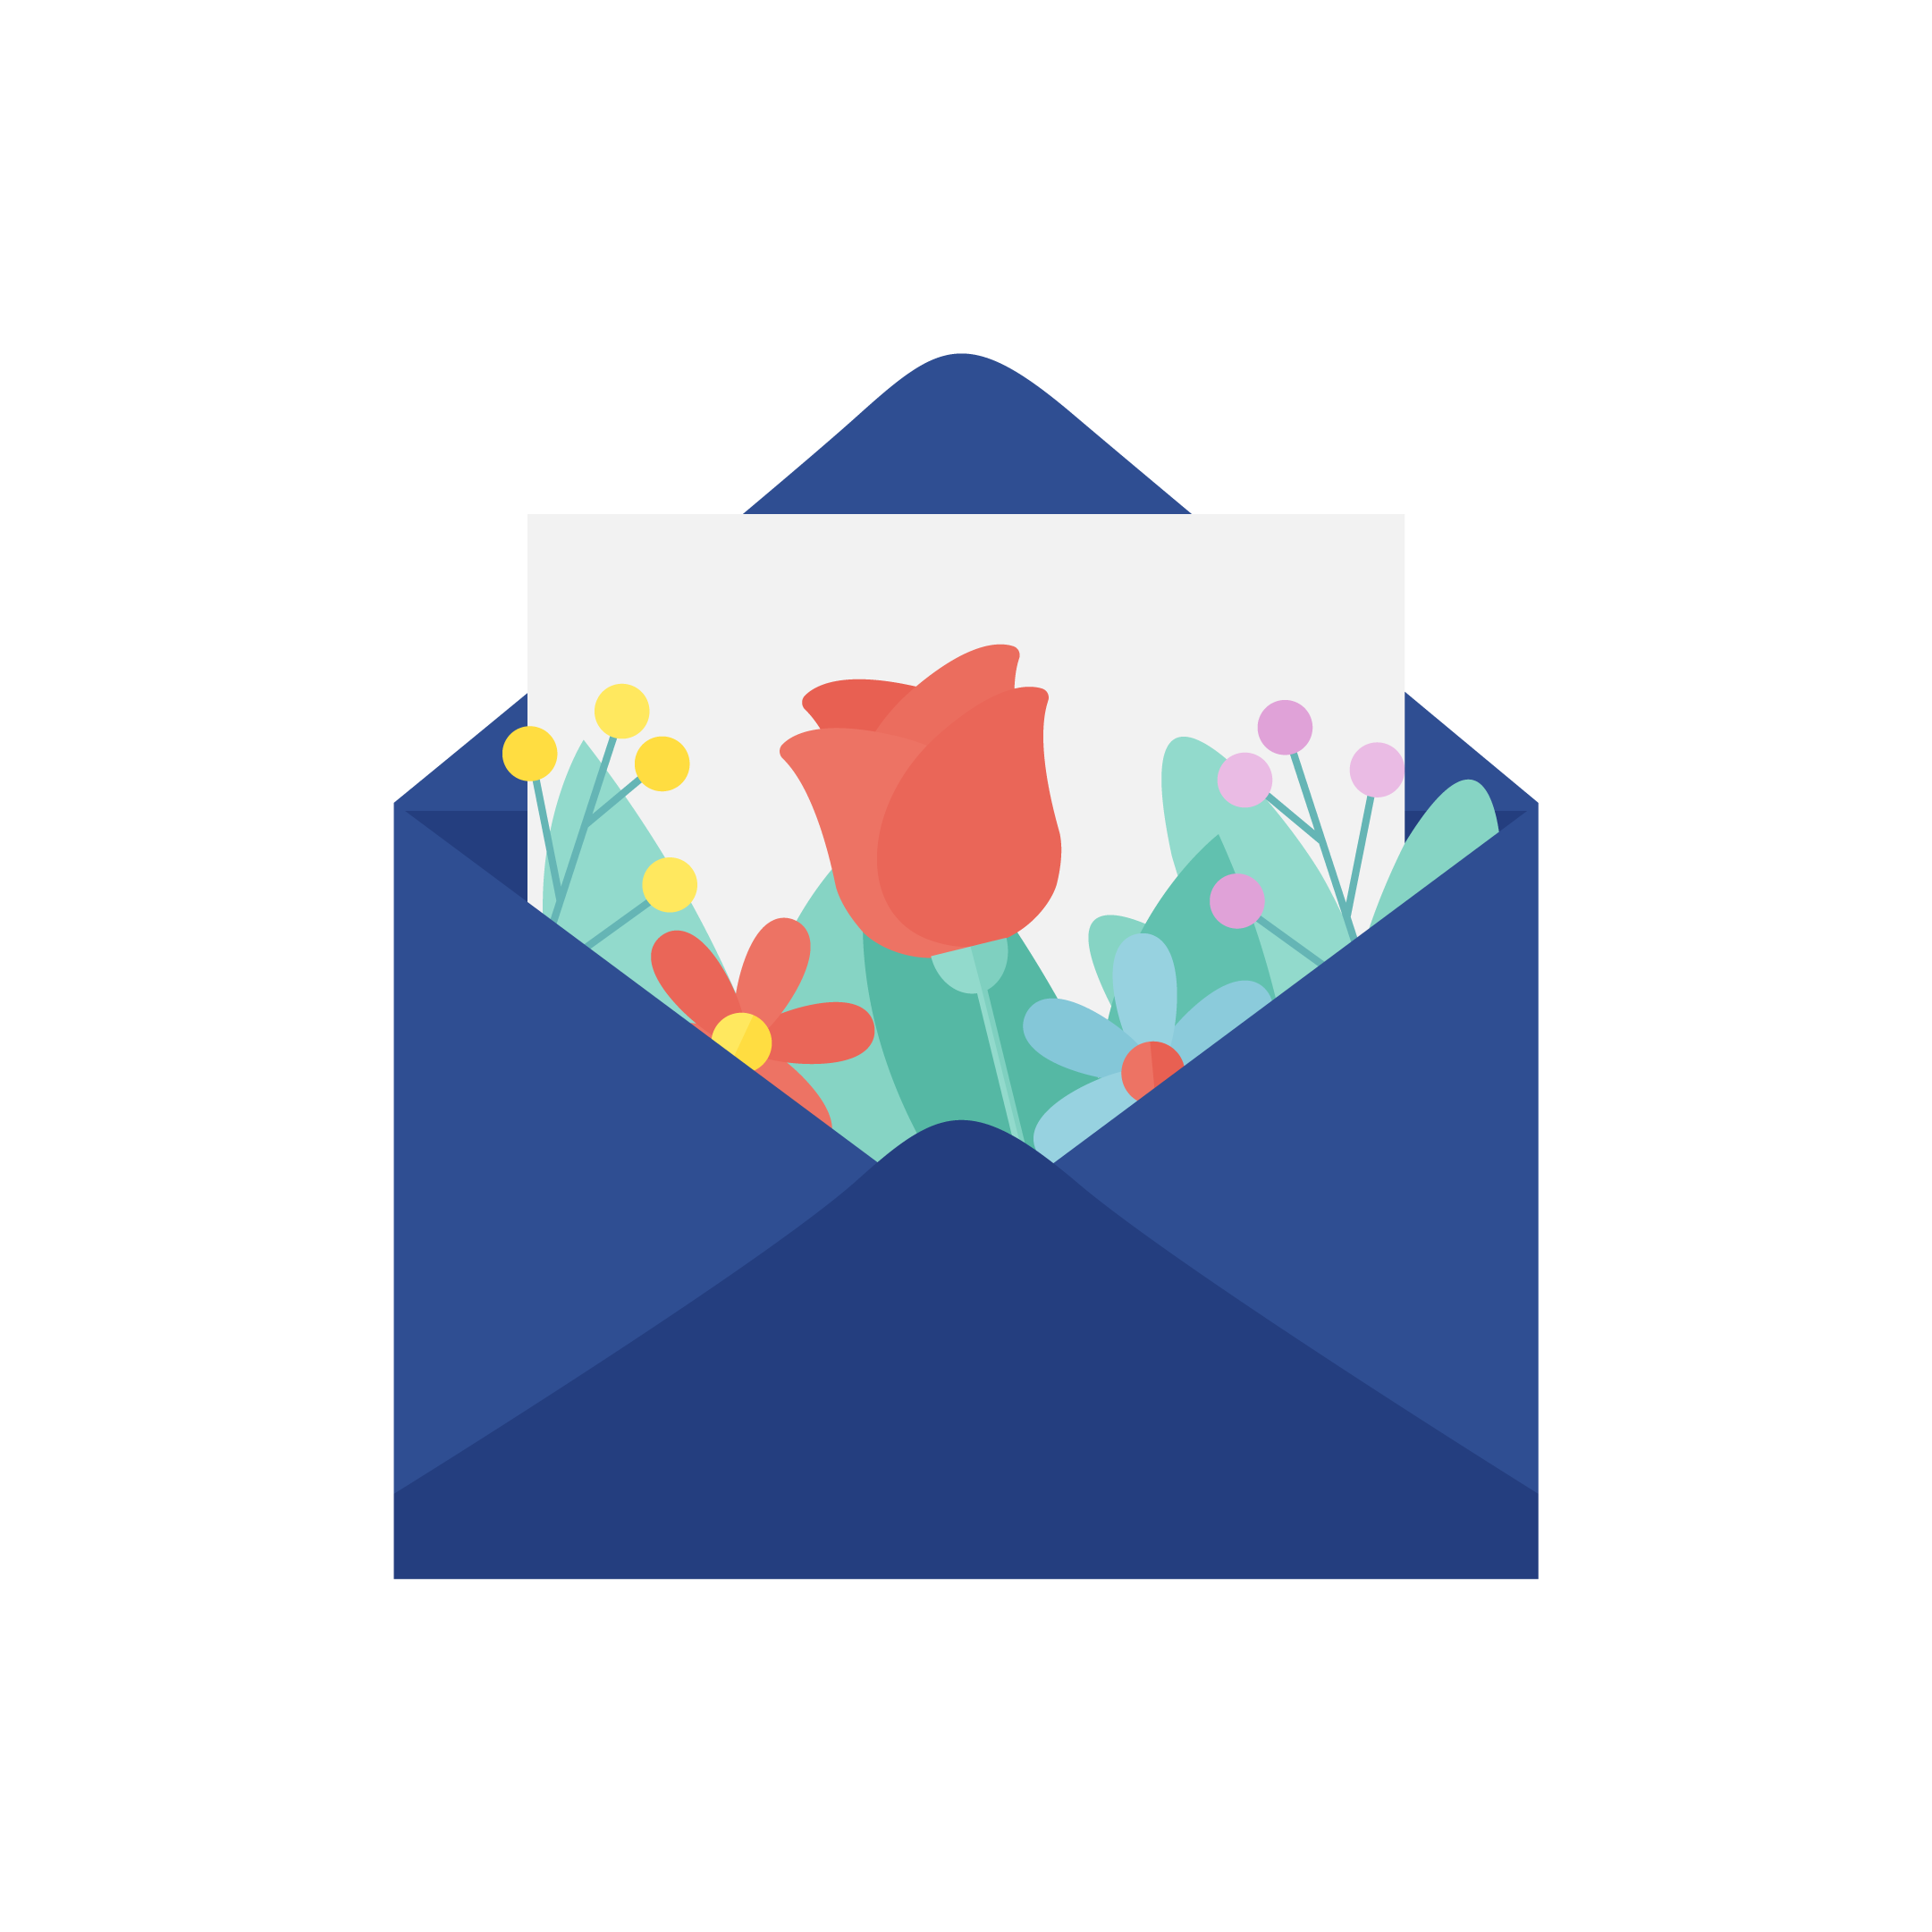 Vector illustration of an envelope with a love letter & flowers in flat design style